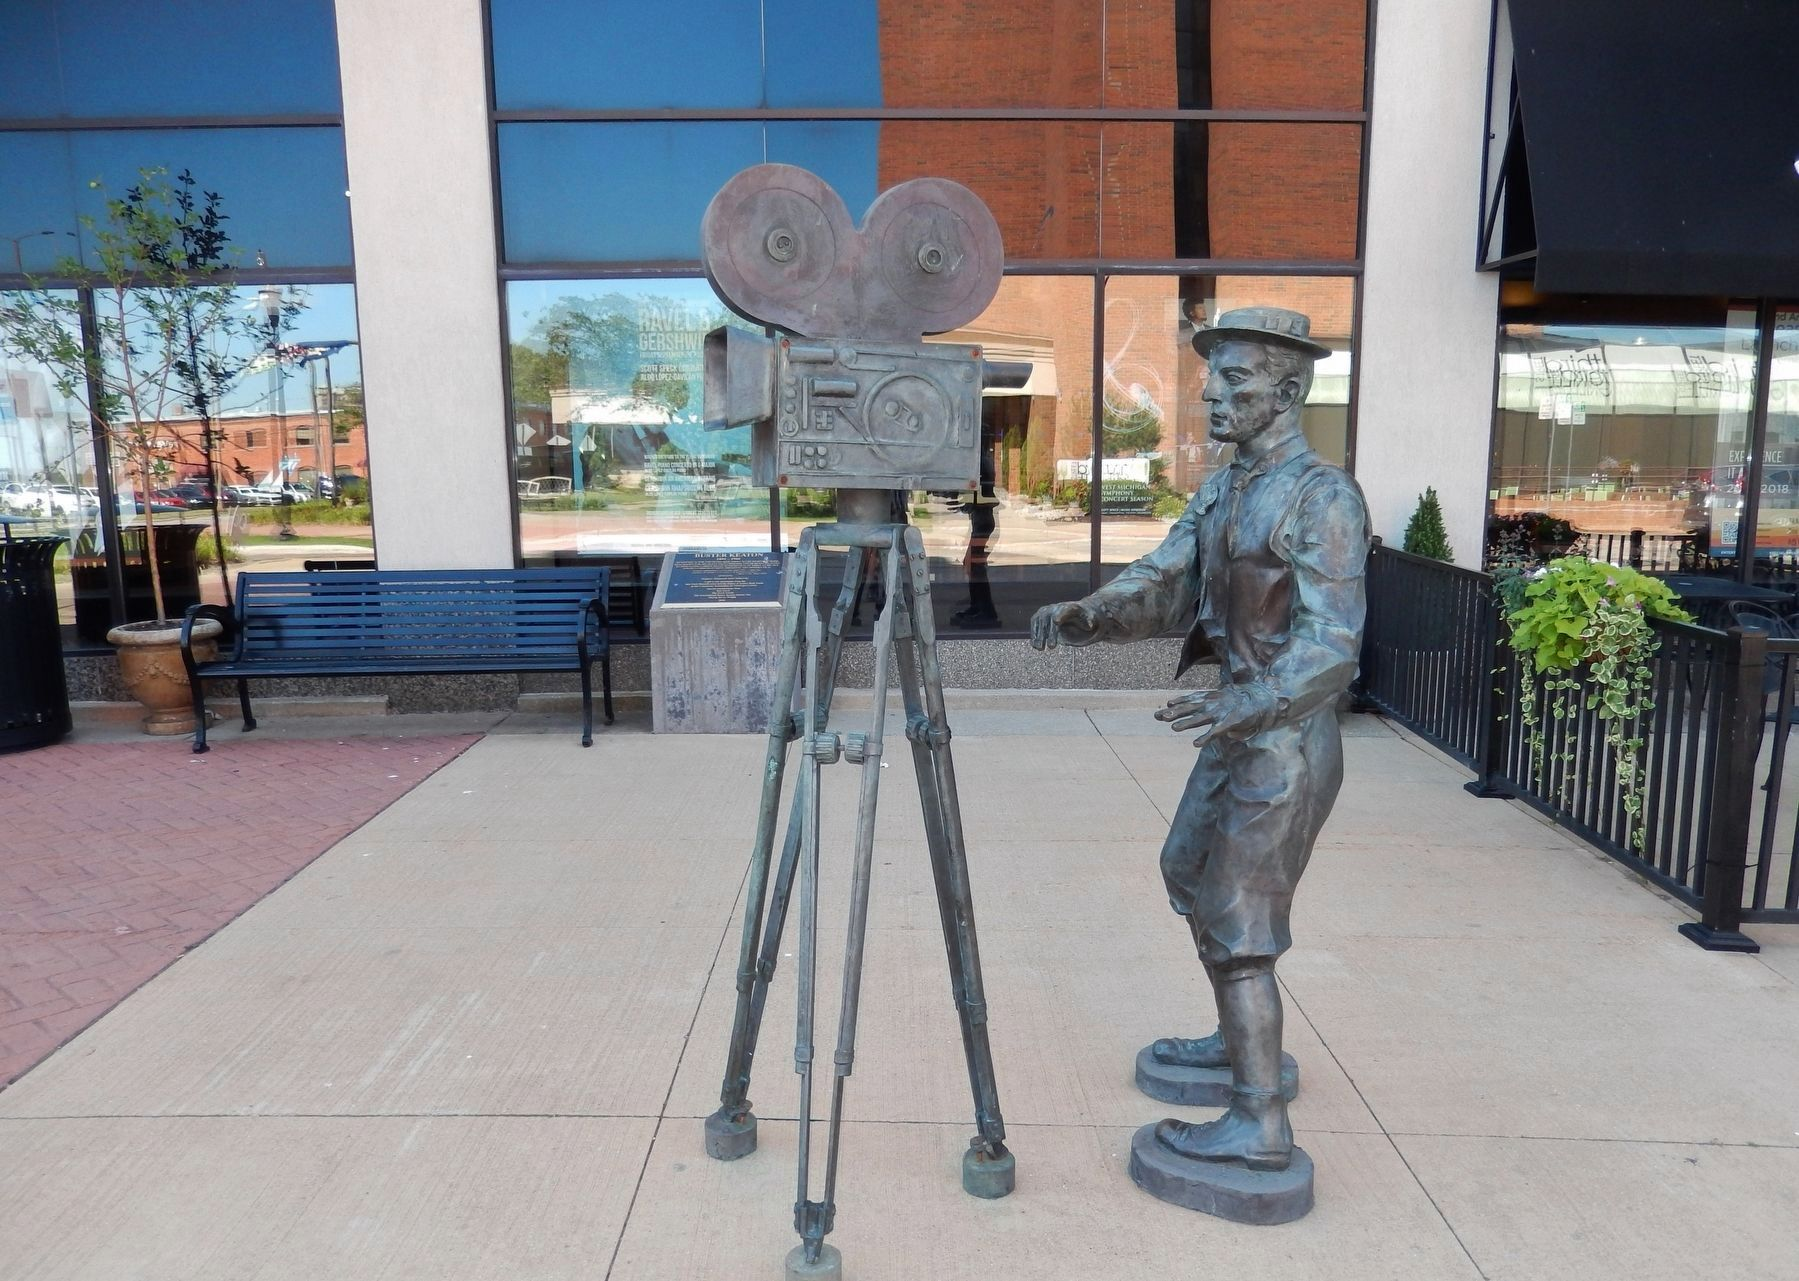 Buster Keaton Marker & Sculpture (<i>wide view; marker in background on right side of bench</i>) image. Click for full size.